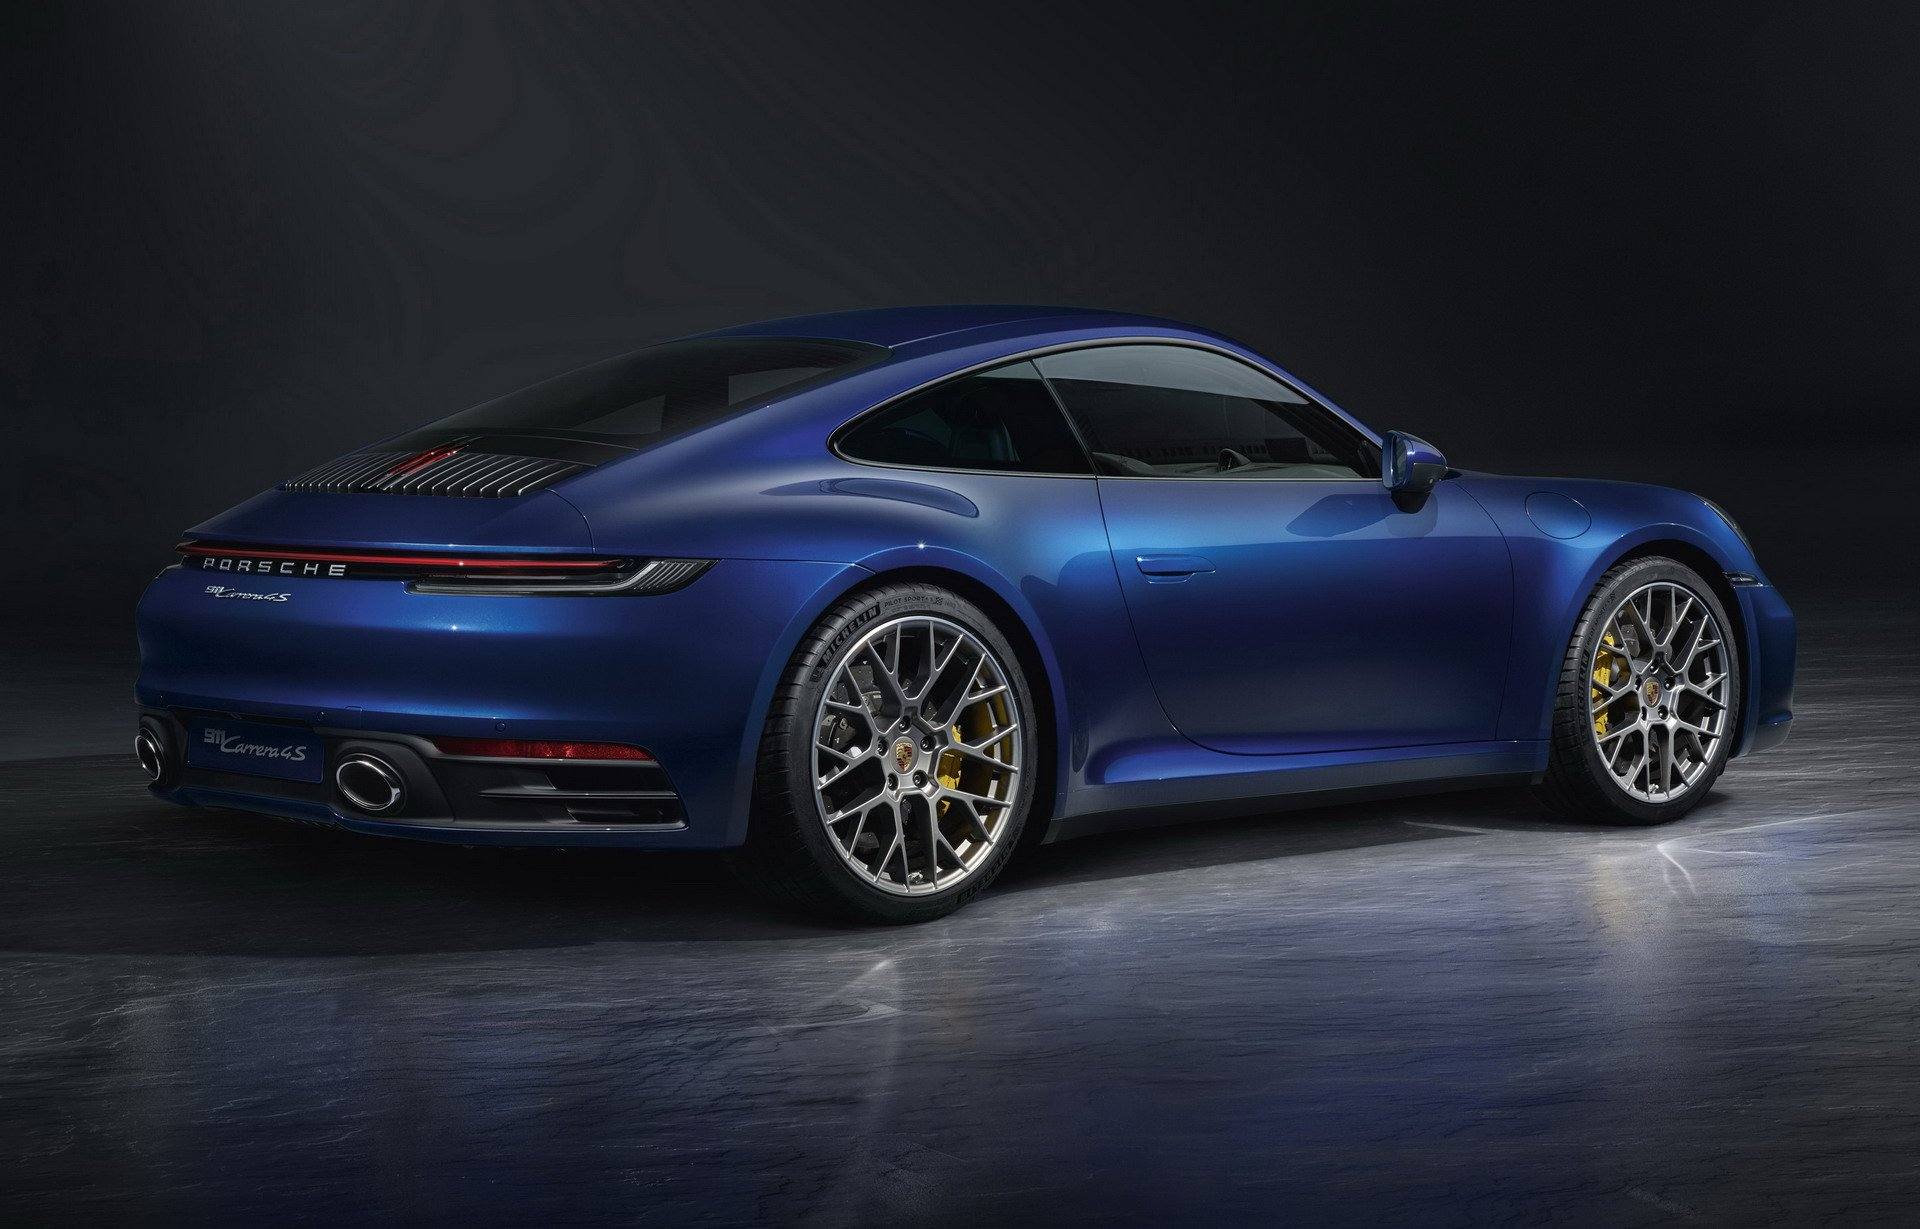 2020 Porsche 911 carrera 4S rear wing